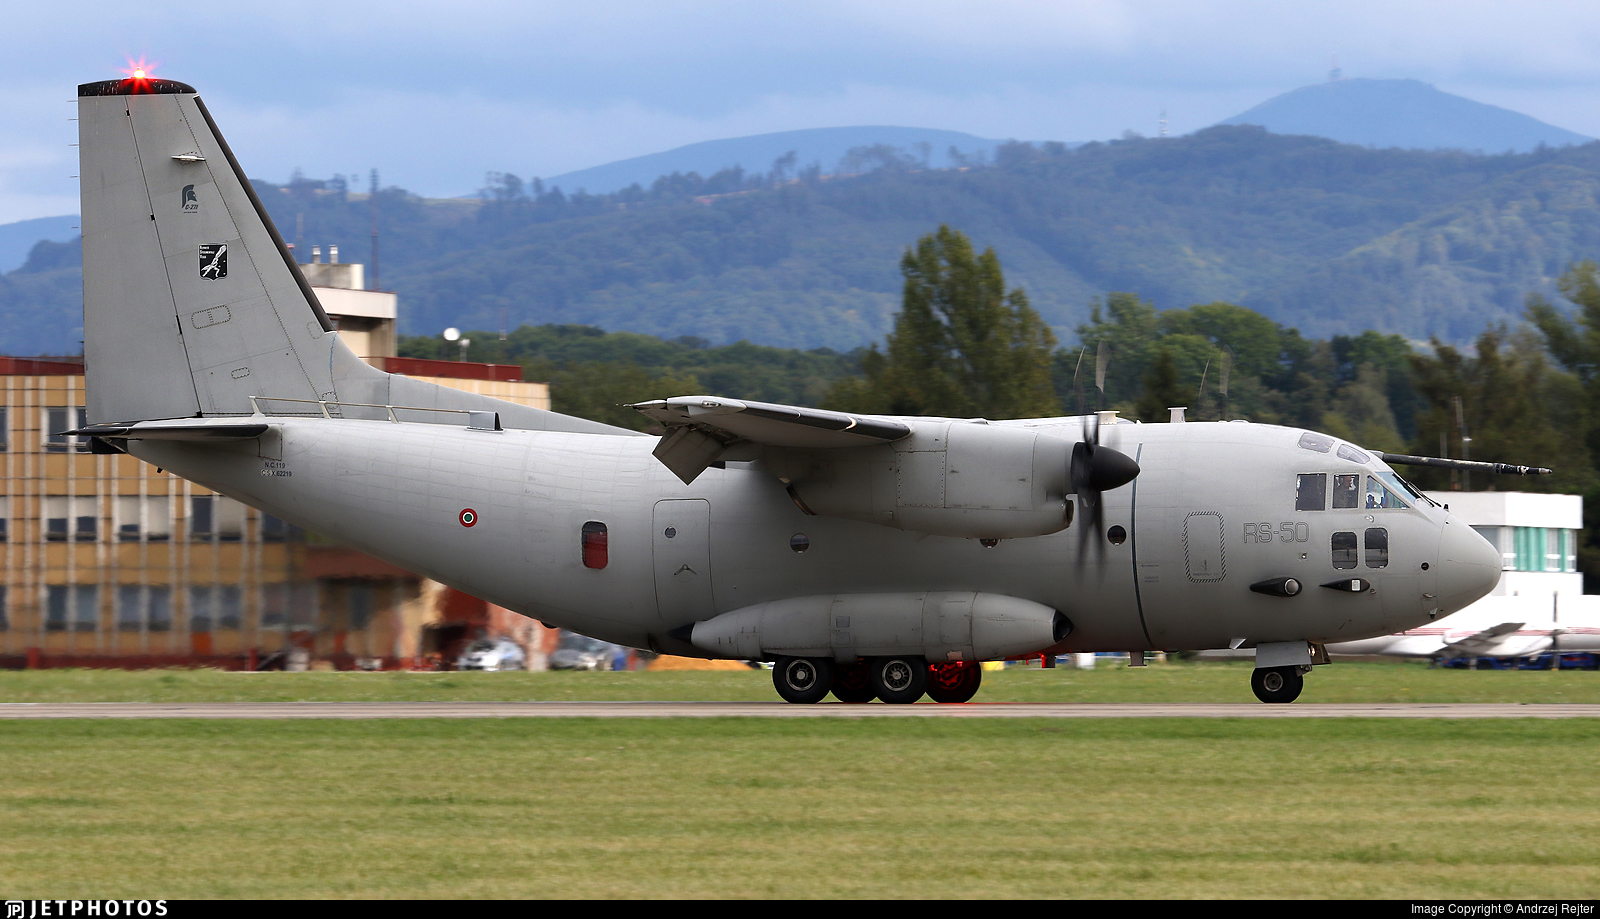 MM62219 - Alenia C-27J Spartan - Italy - Air Force